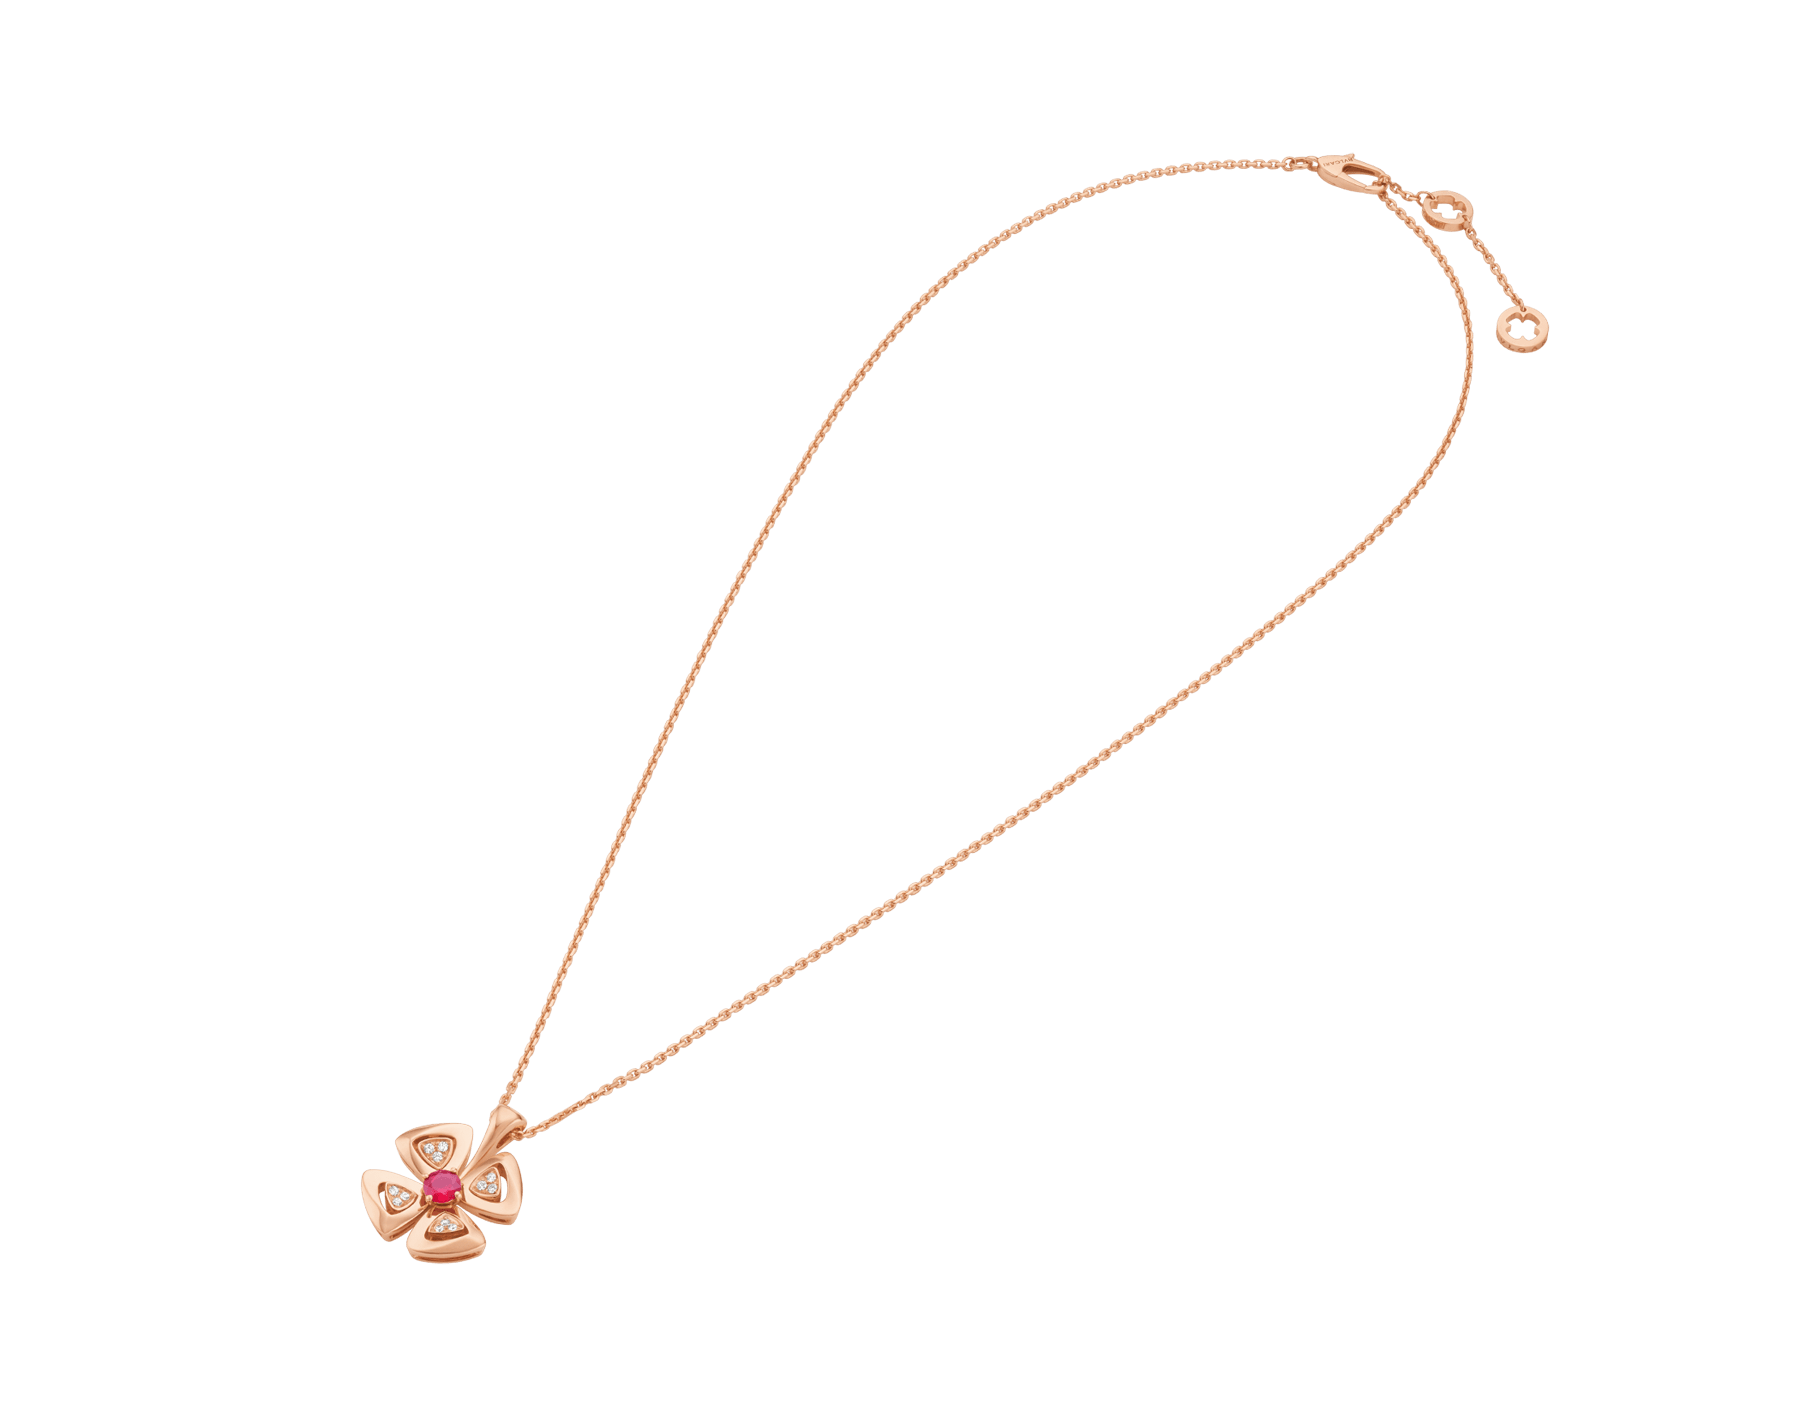 Fiorever 18 kt rose gold pendant necklace set with a central ruby (0.30 ct) and pavé diamonds. Special Edition 357759 image 2